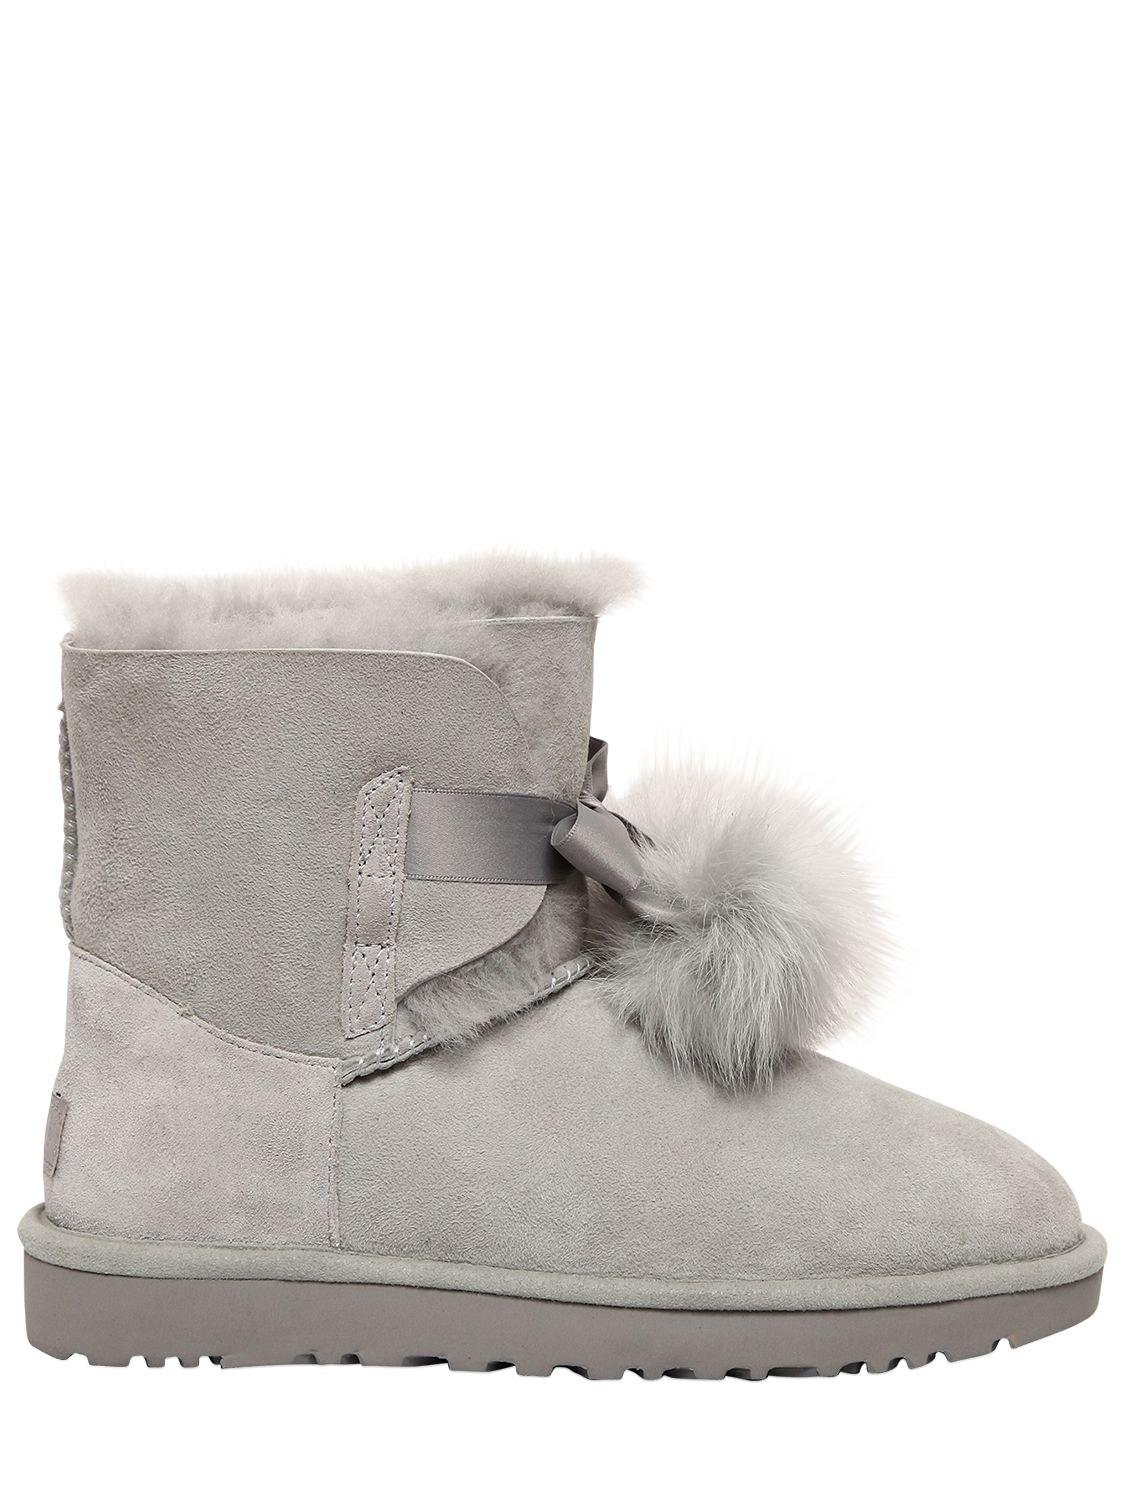 778fcabeaa4 UGG Gita Shearling Boots W/ Pompoms in Gray - Lyst